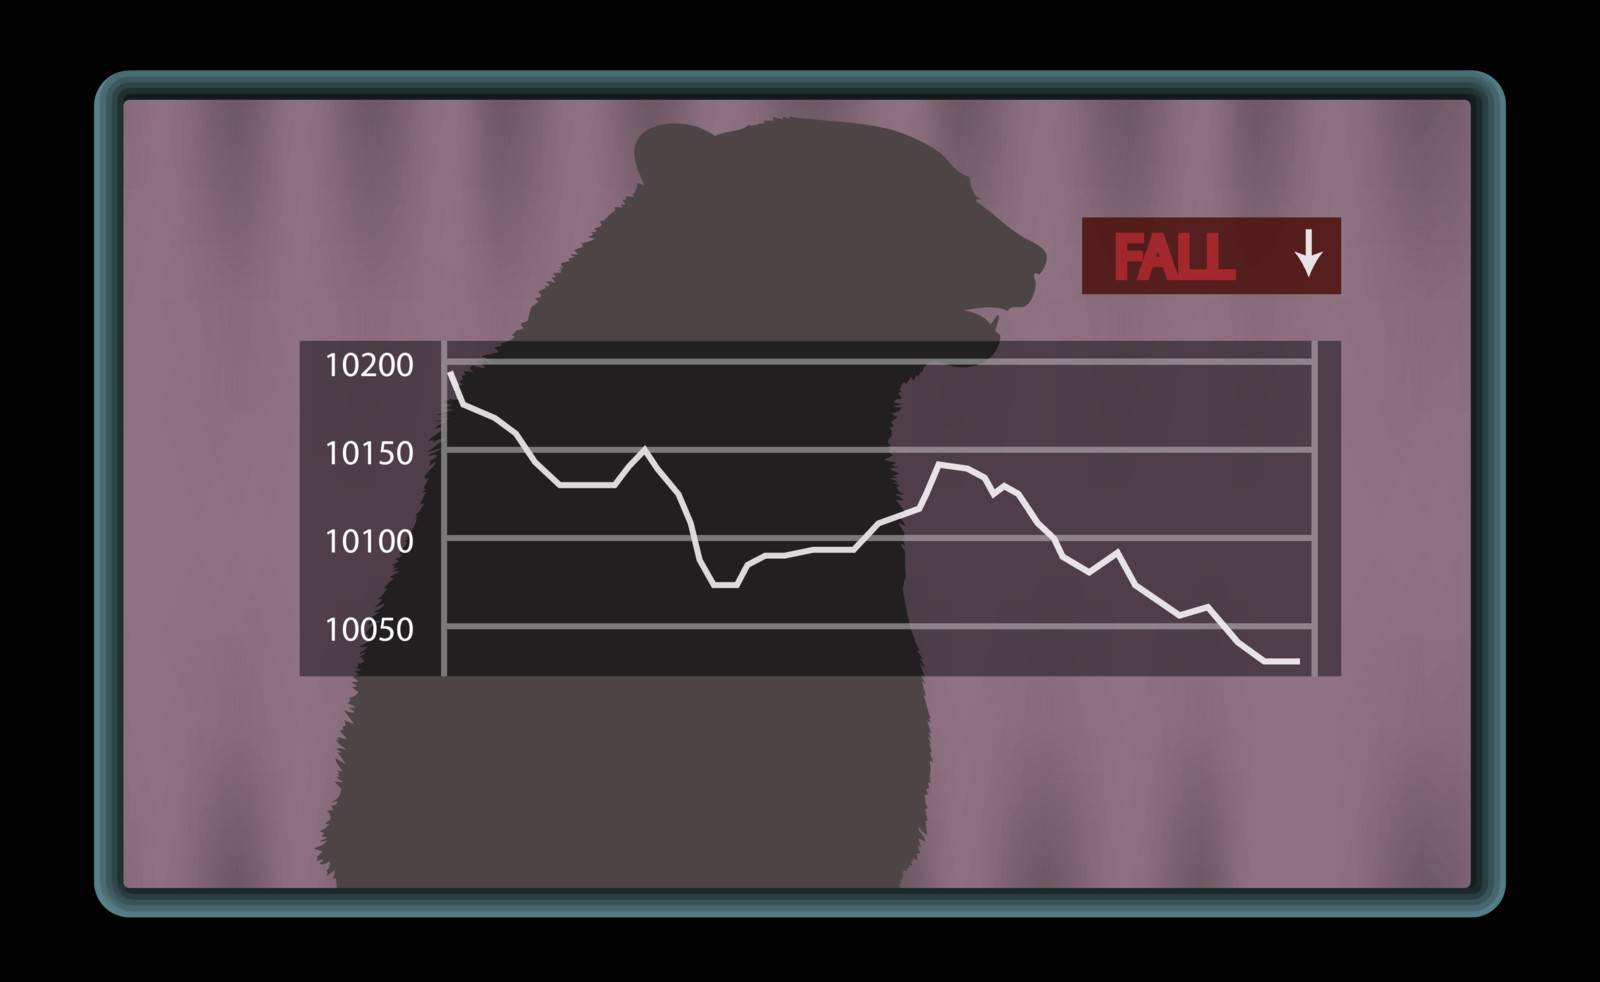 Stock chart at the stock exchange with red fall indicator